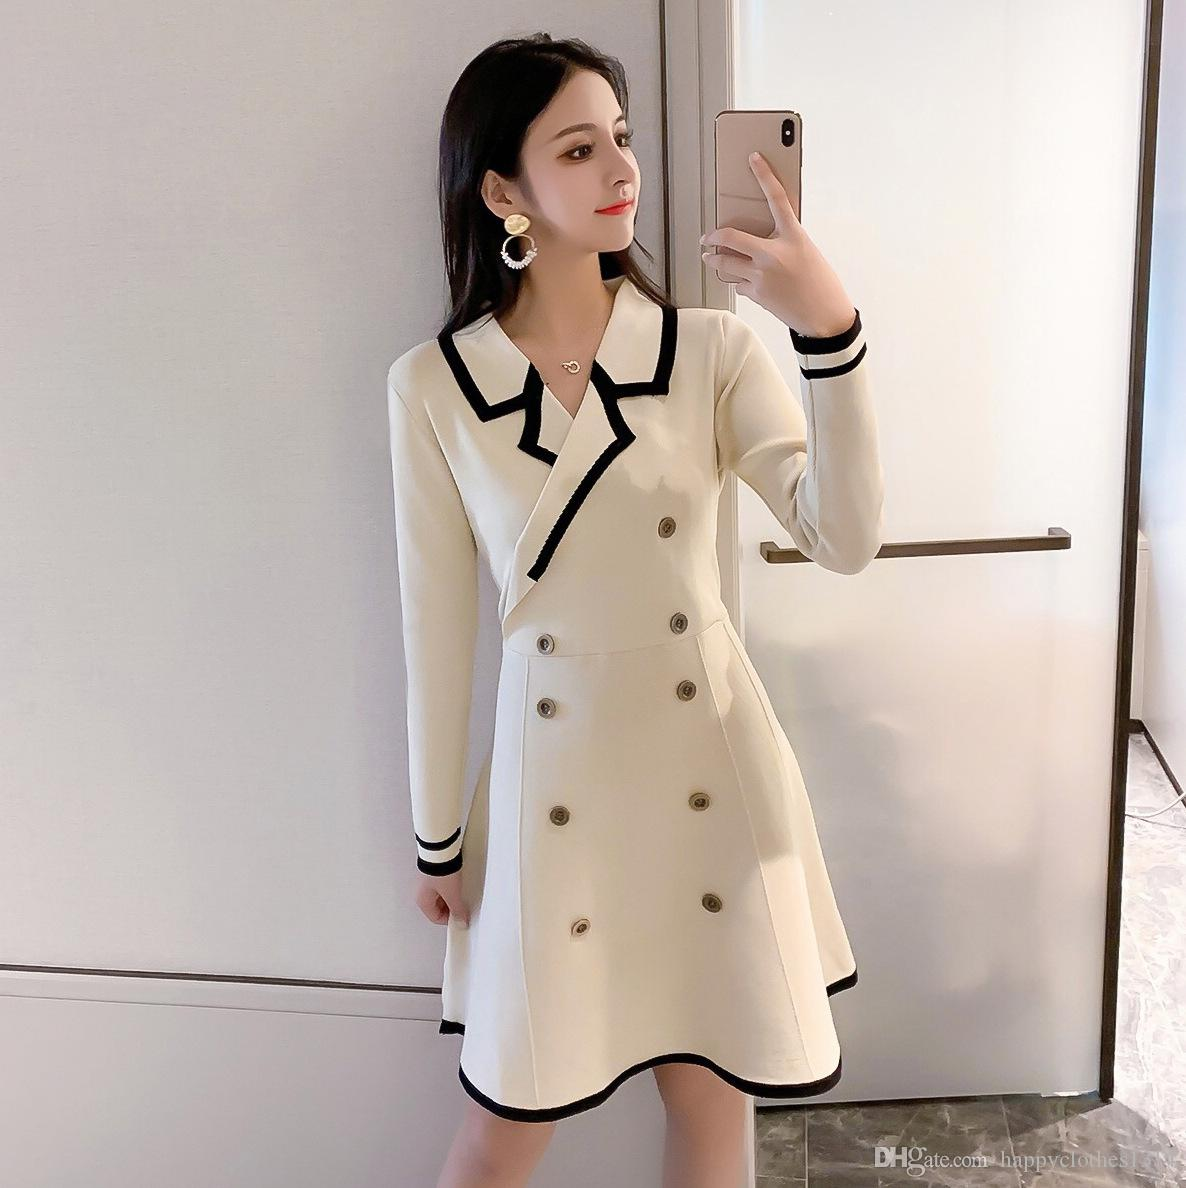 Luxury Winter Coat Double Breasted Blazer Dress Woman Spring Warm Knitted Dress Office Business Lady Slim Bodycon Trench Style Dresses